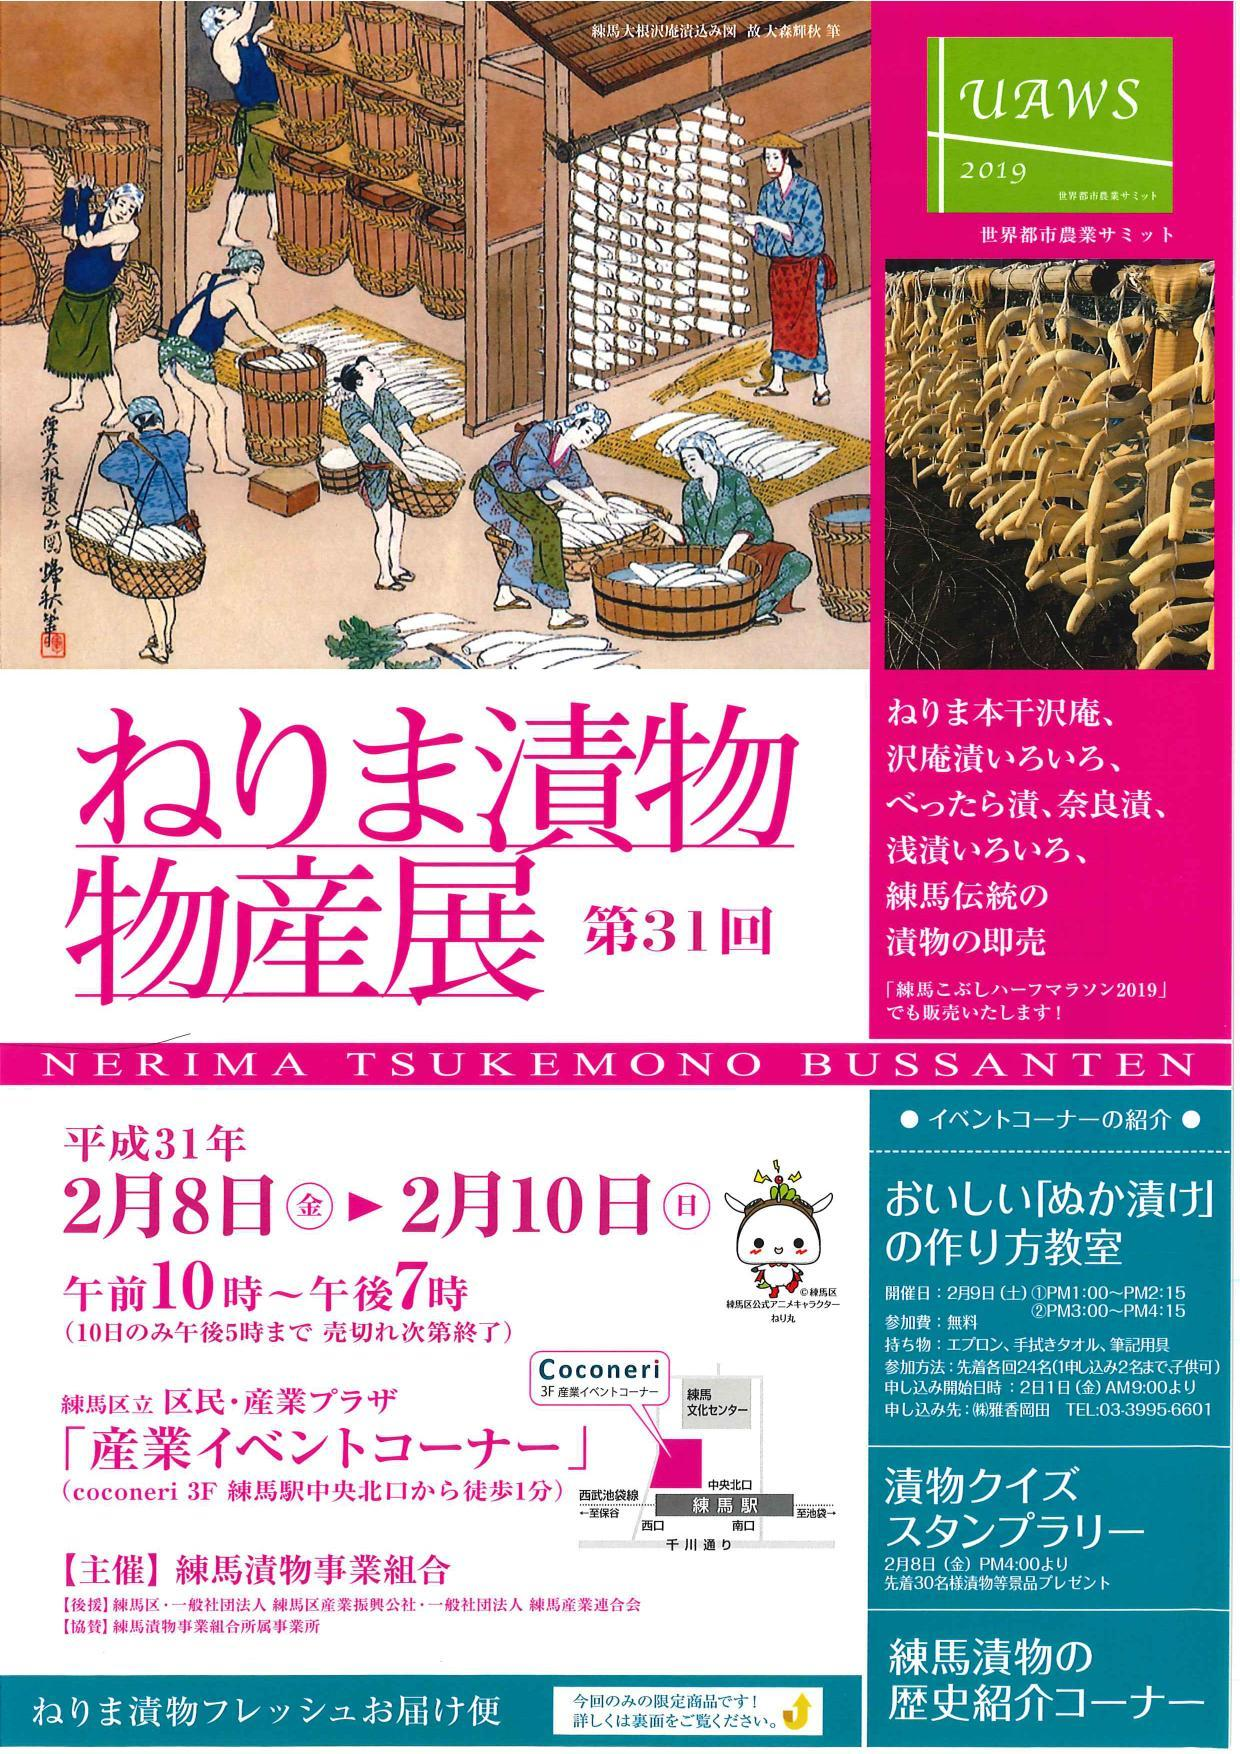 nerima pickle product exhibition (the 31st)